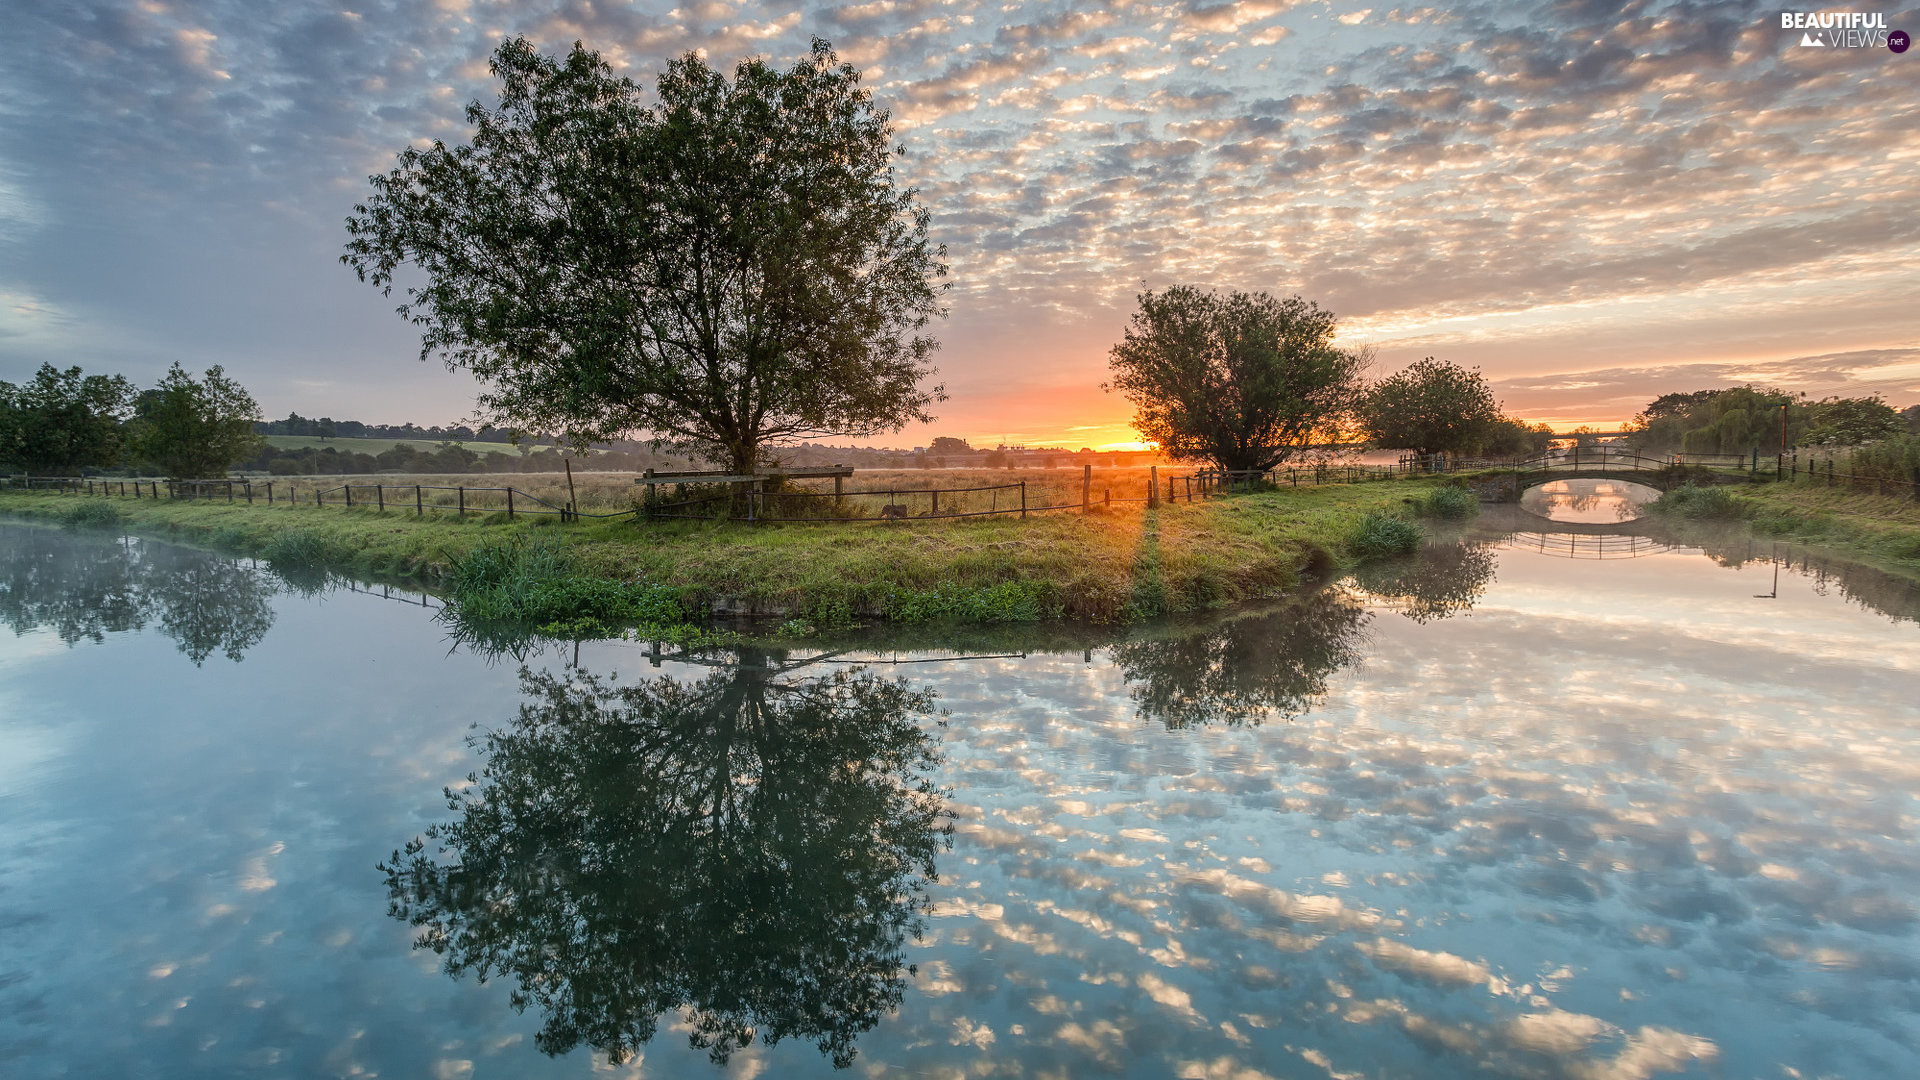 clouds, trees, viewes, River, reflection, Great Sunsets